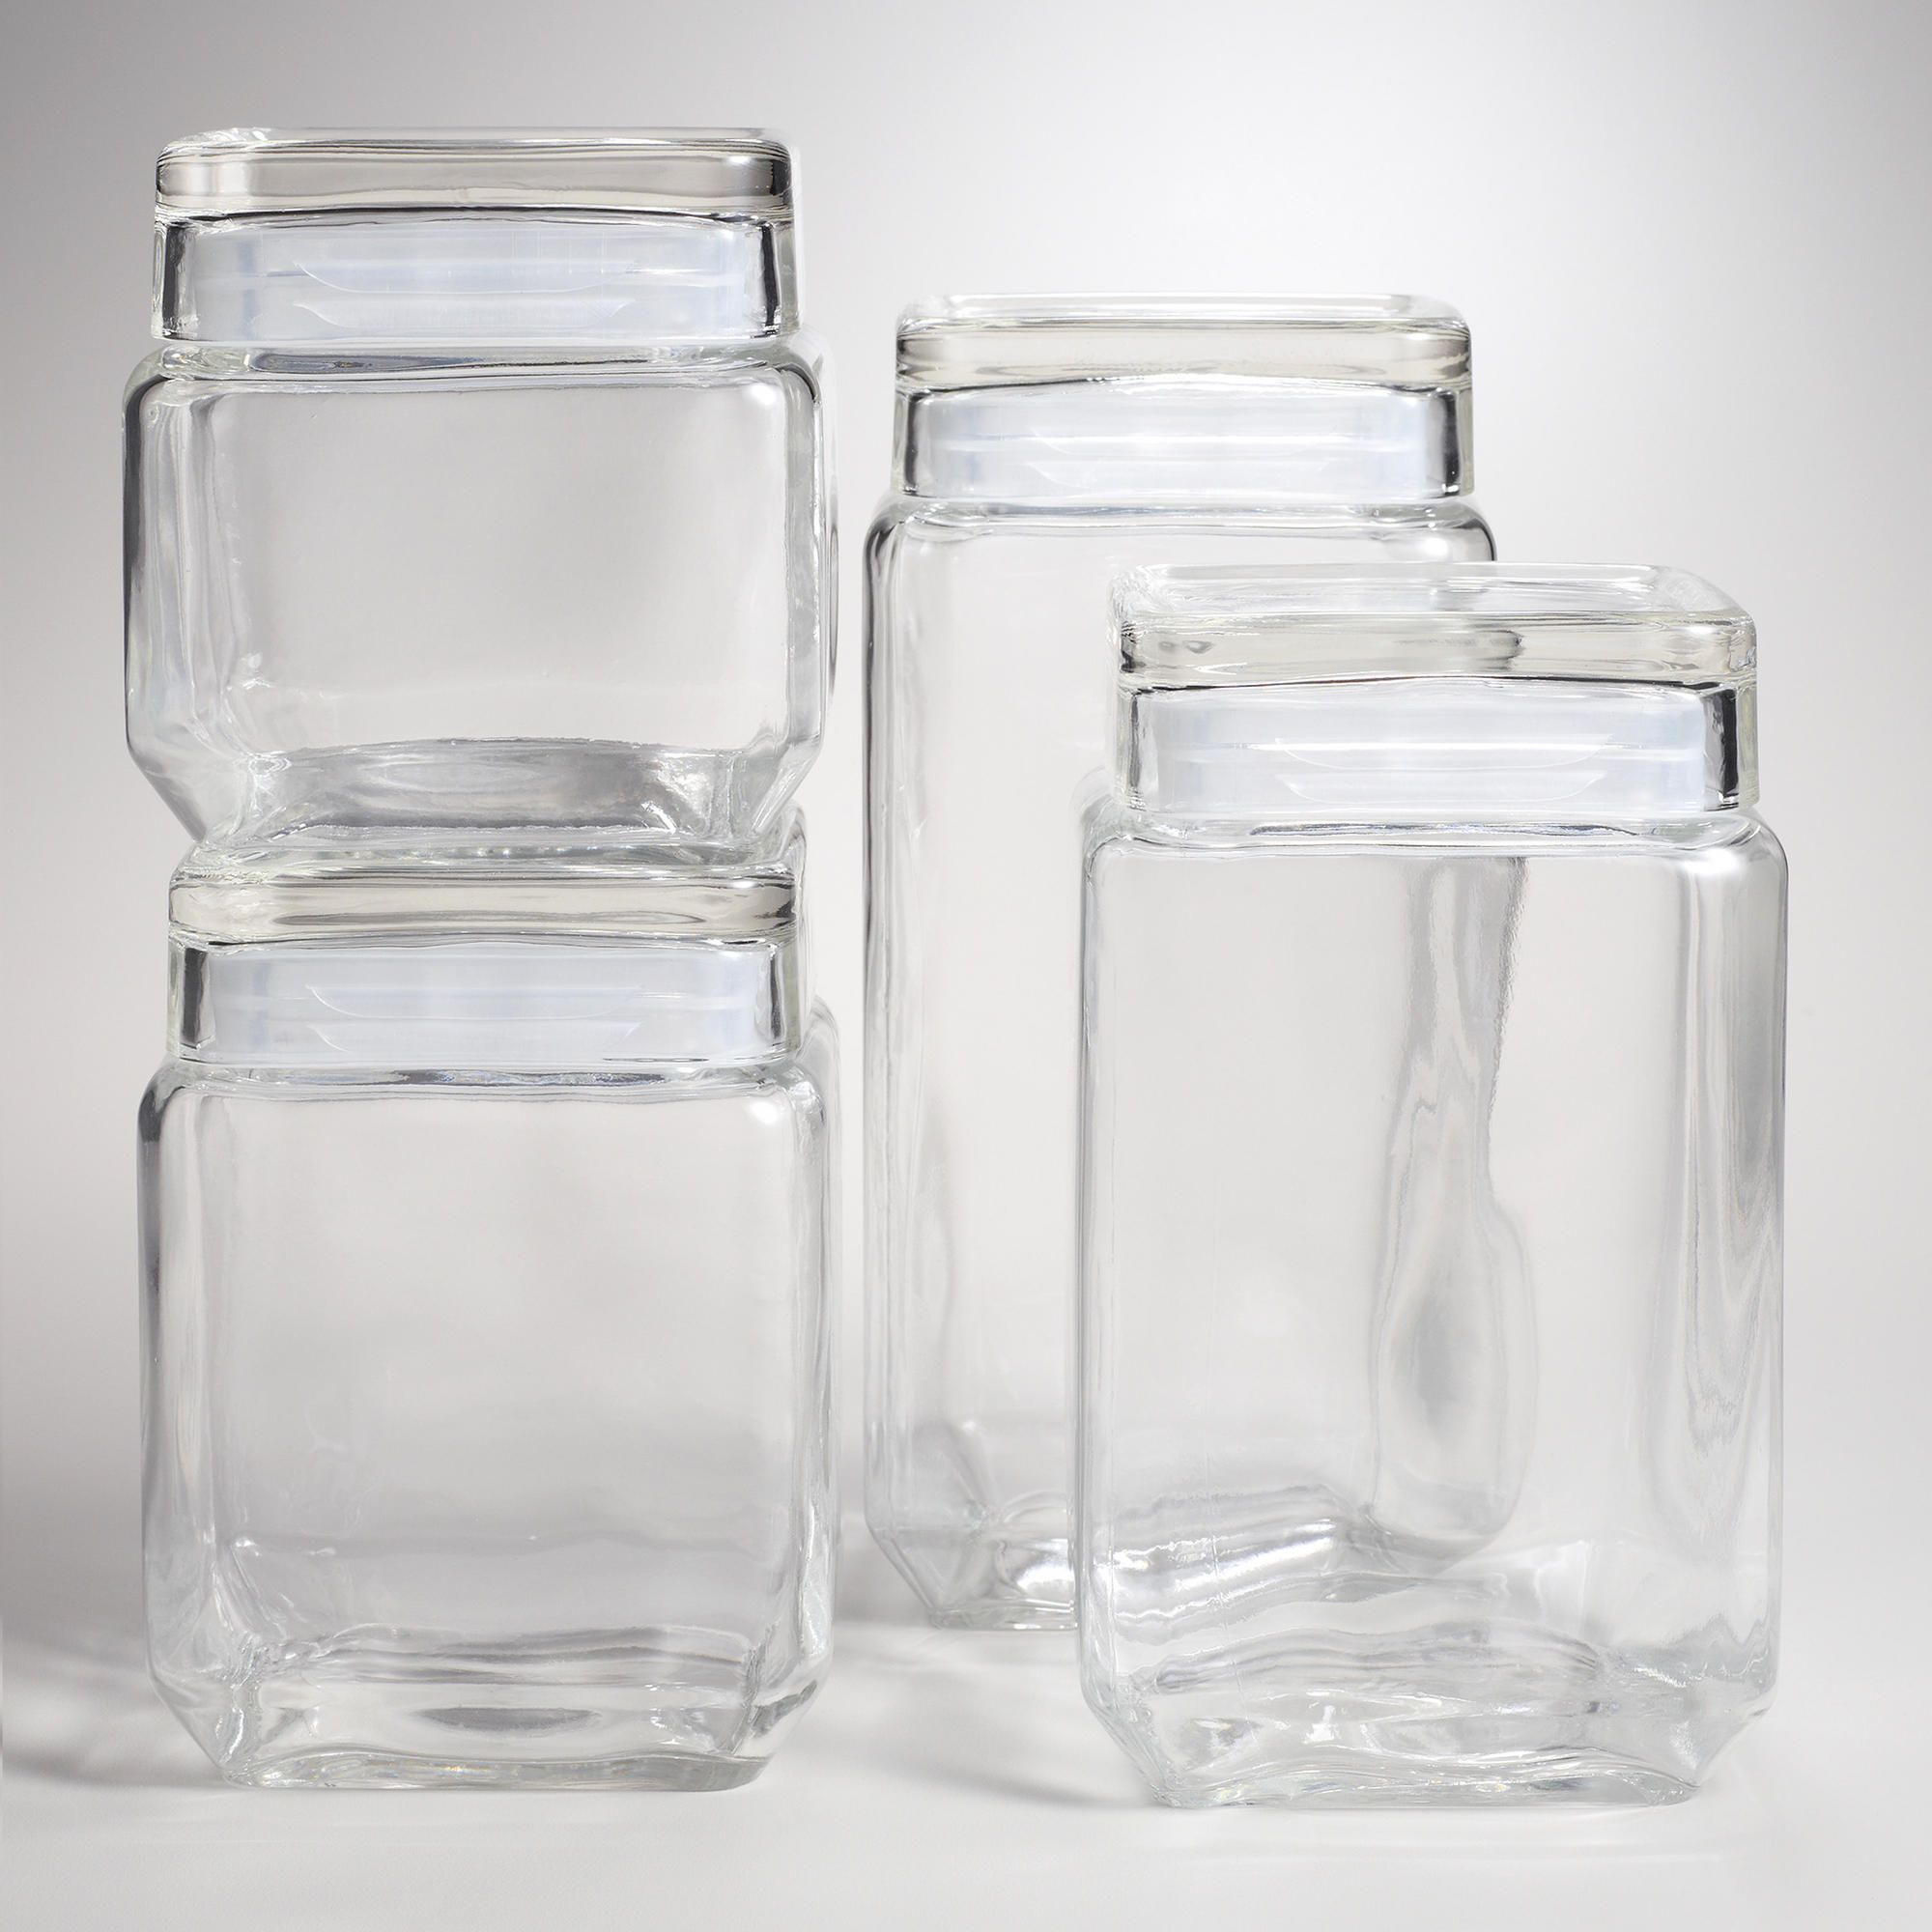 Stackable Square Glass Jars World Market For Organizing Pantry